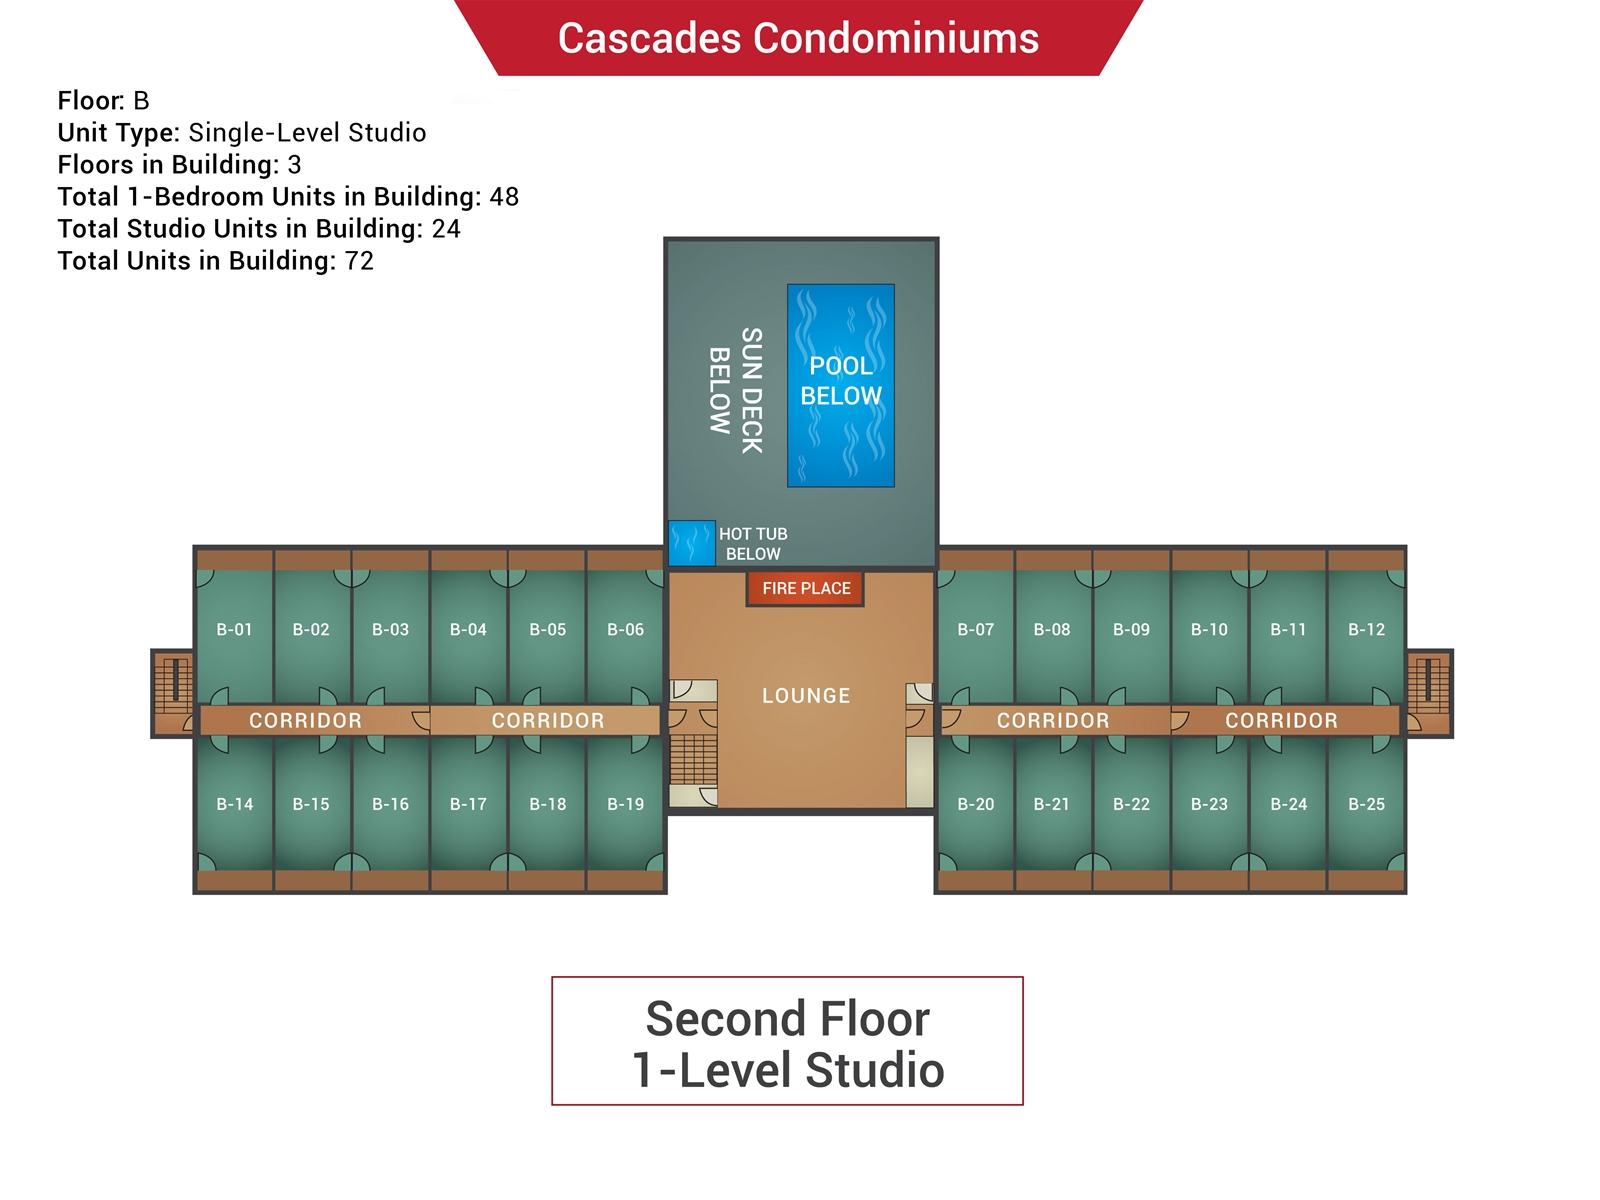 Floor Plan for Cascades B-09 - Sunday River Condo